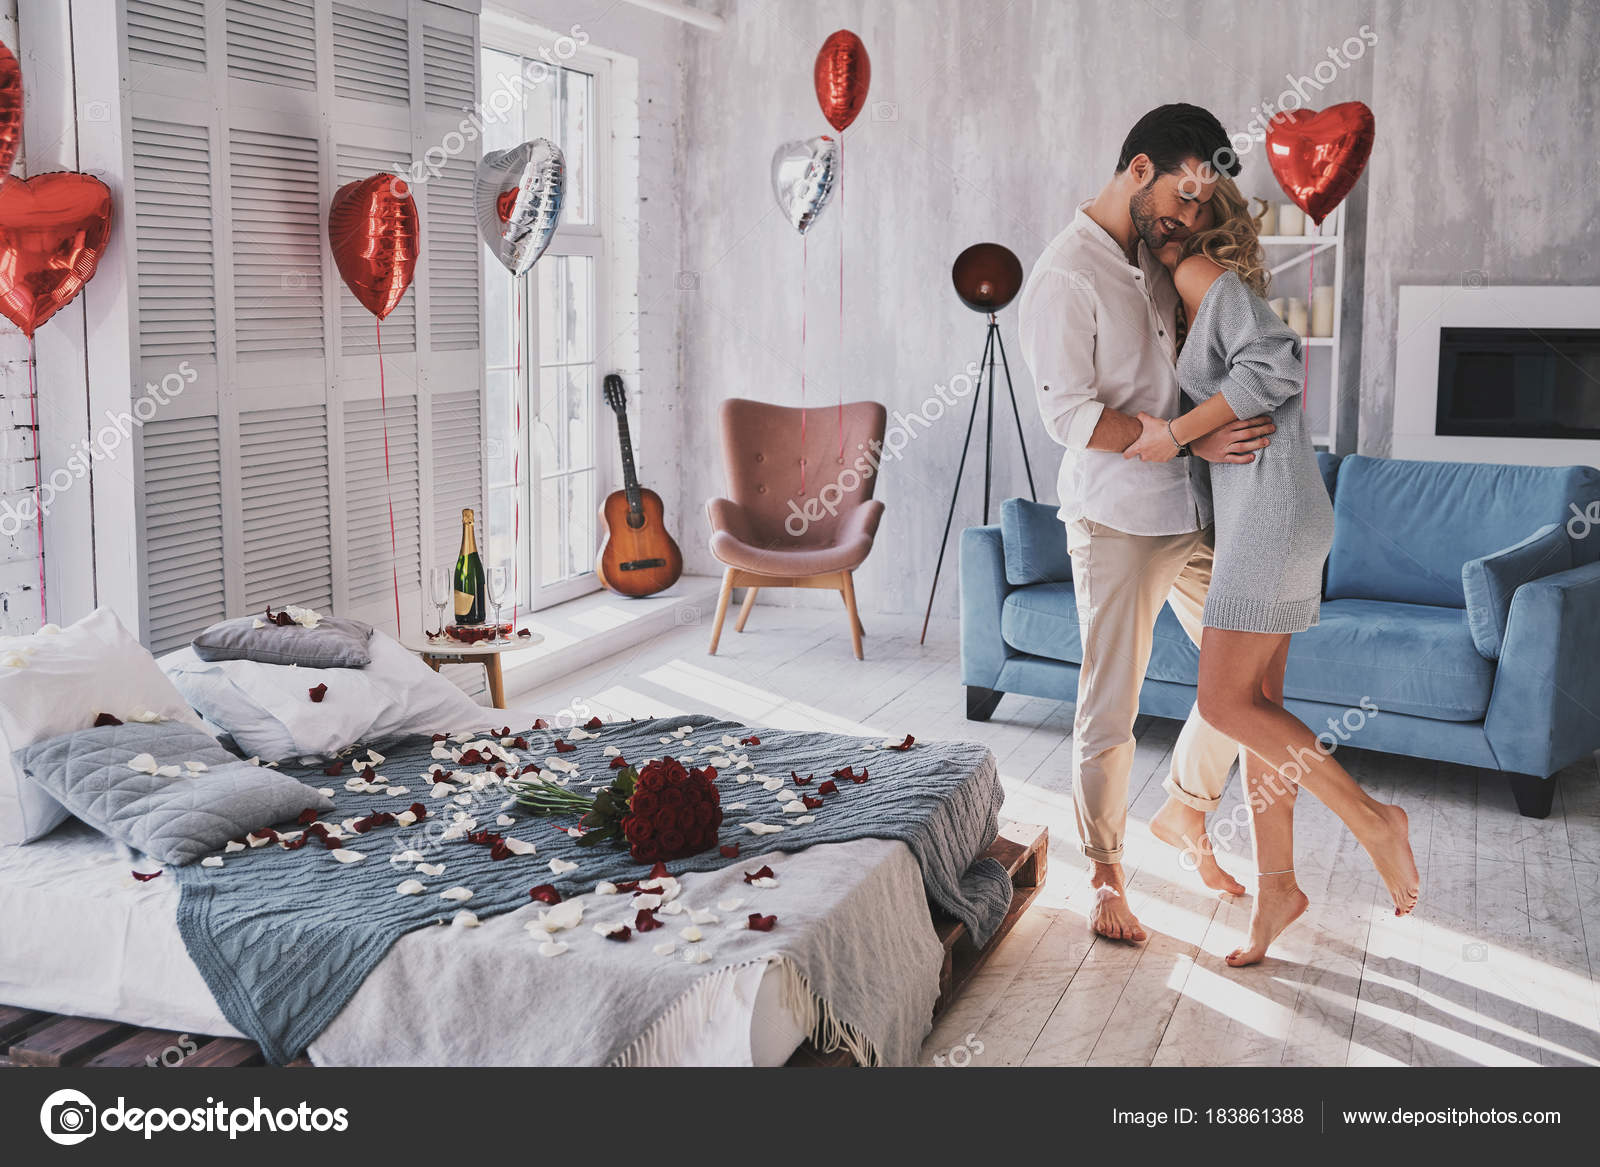 Totally Love Beautiful Couple Embracing Bedroom Full Balloons Rose Petals Stock Photo Image By C Gstockstudio 183861388